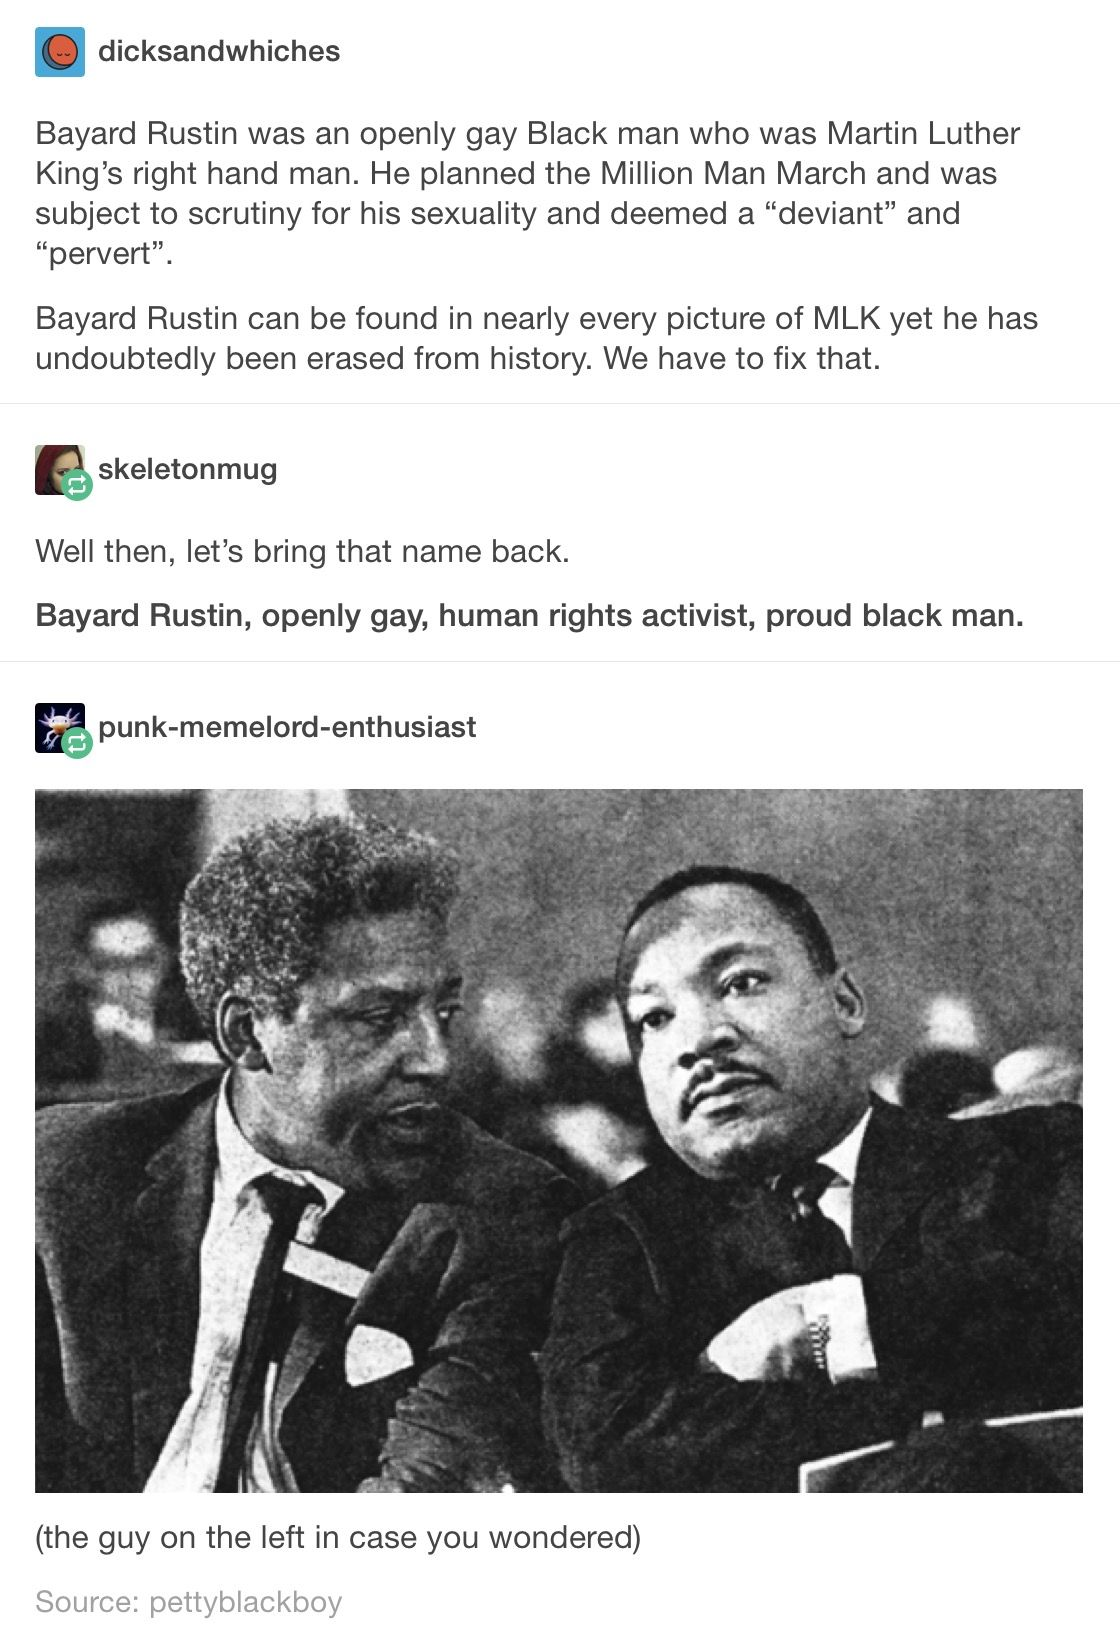 from Lewis activist gay right site